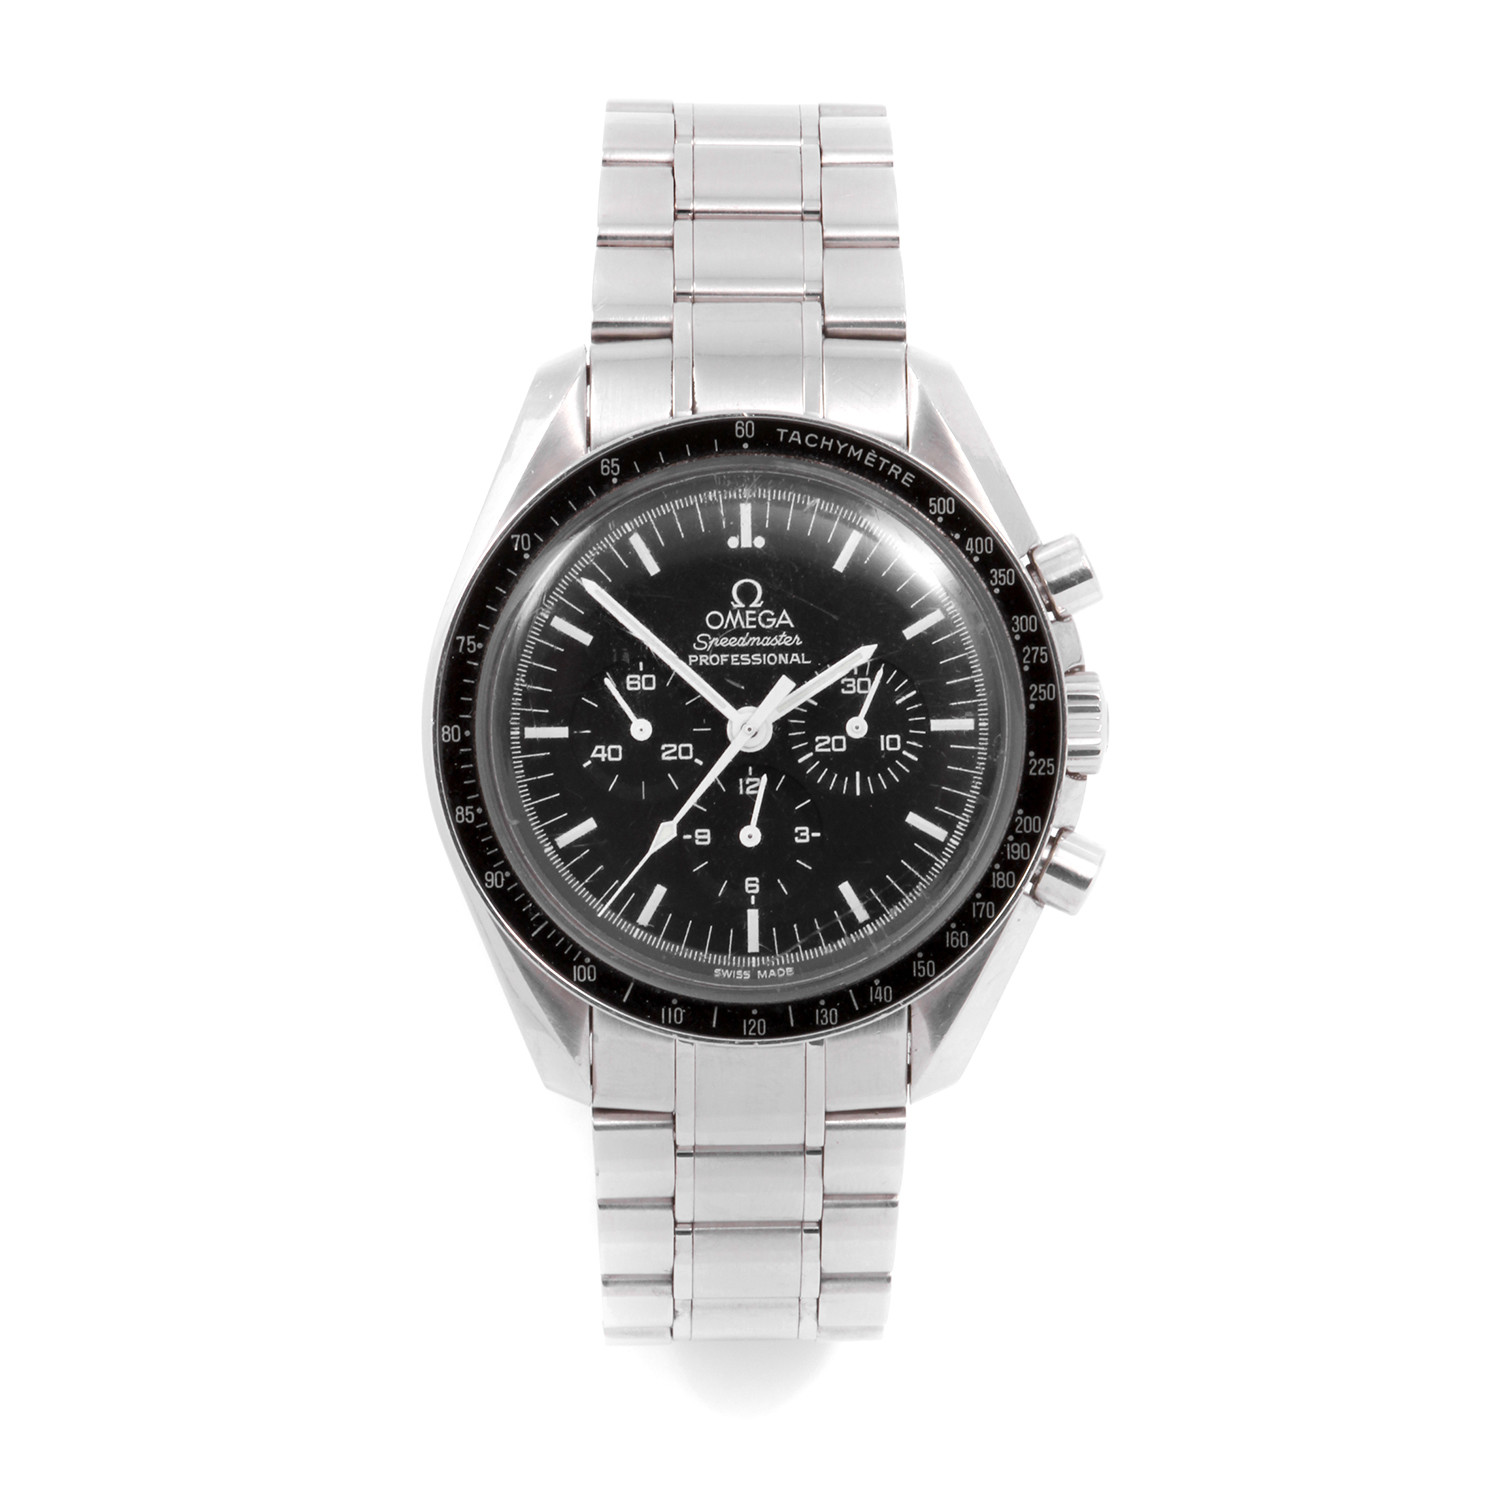 omega speedmaster moonwatch professional chronograph manual wind rh touchofmodern com omega speedmaster manual winding omega speedmaster manual wind for sale